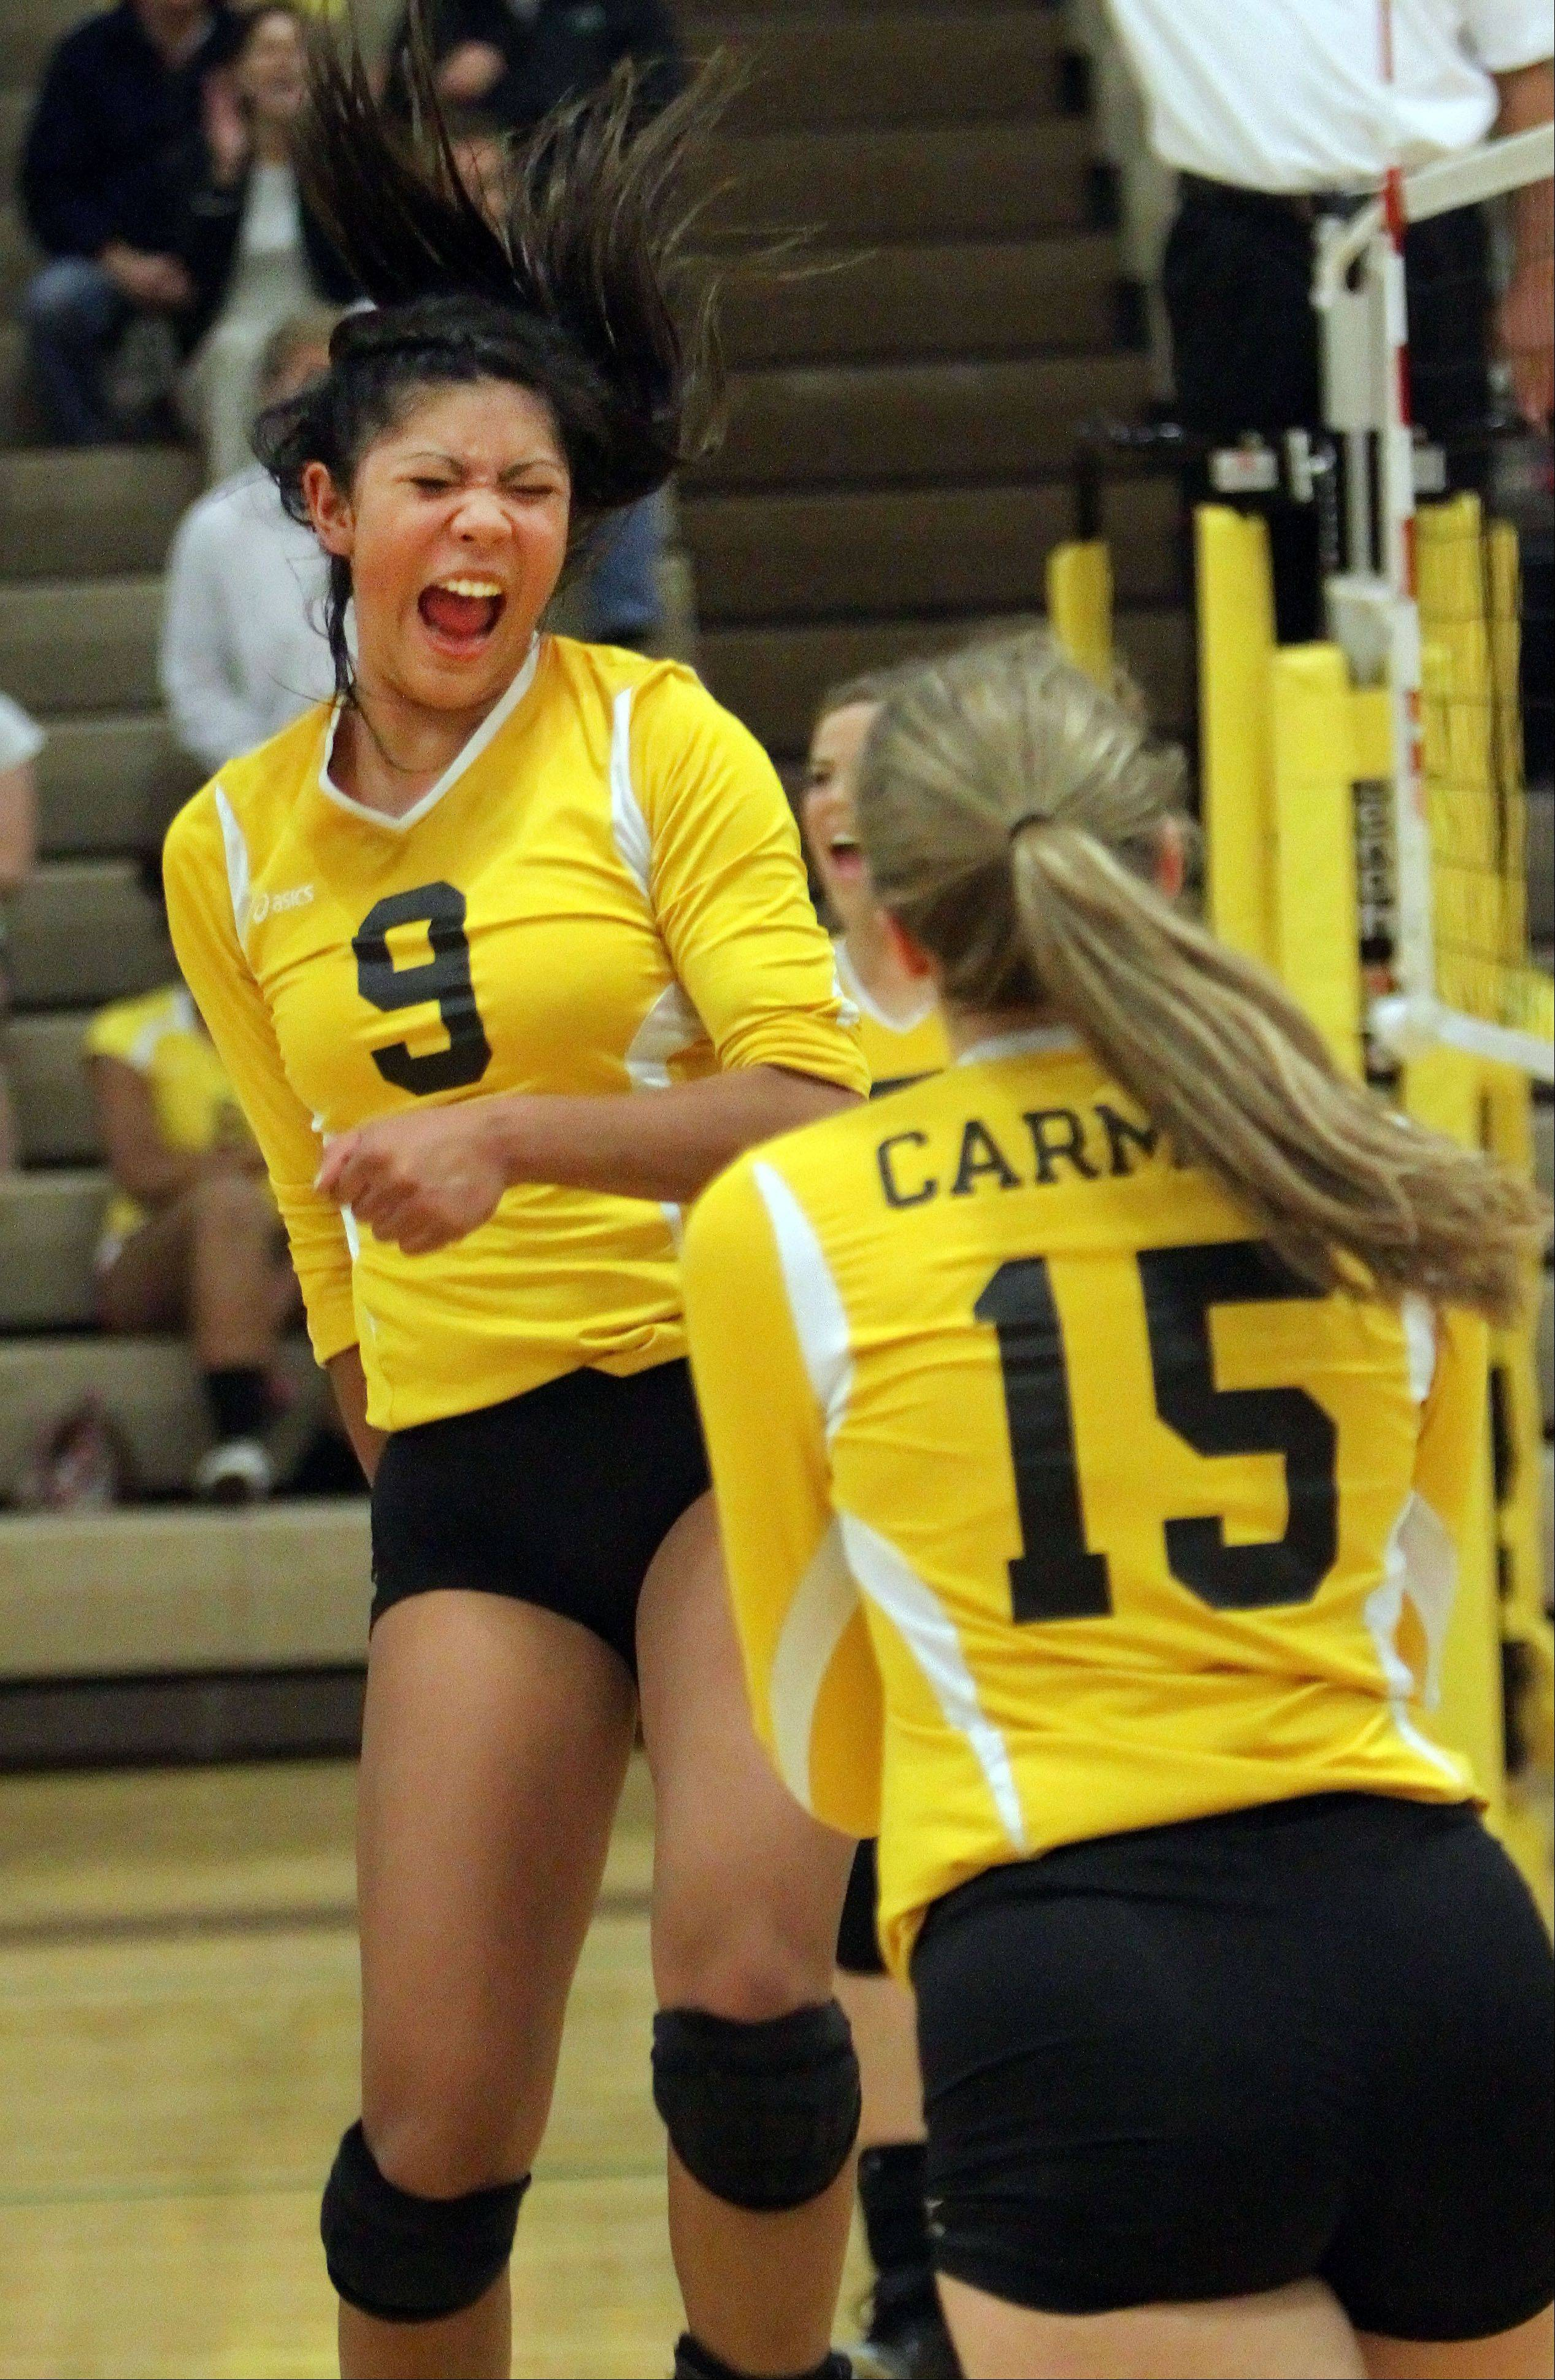 Carmel's Alyssa Armada, left, and Ellie Rengers celebrate after a point against Providence Catholic Tuesday night in Mundelein.